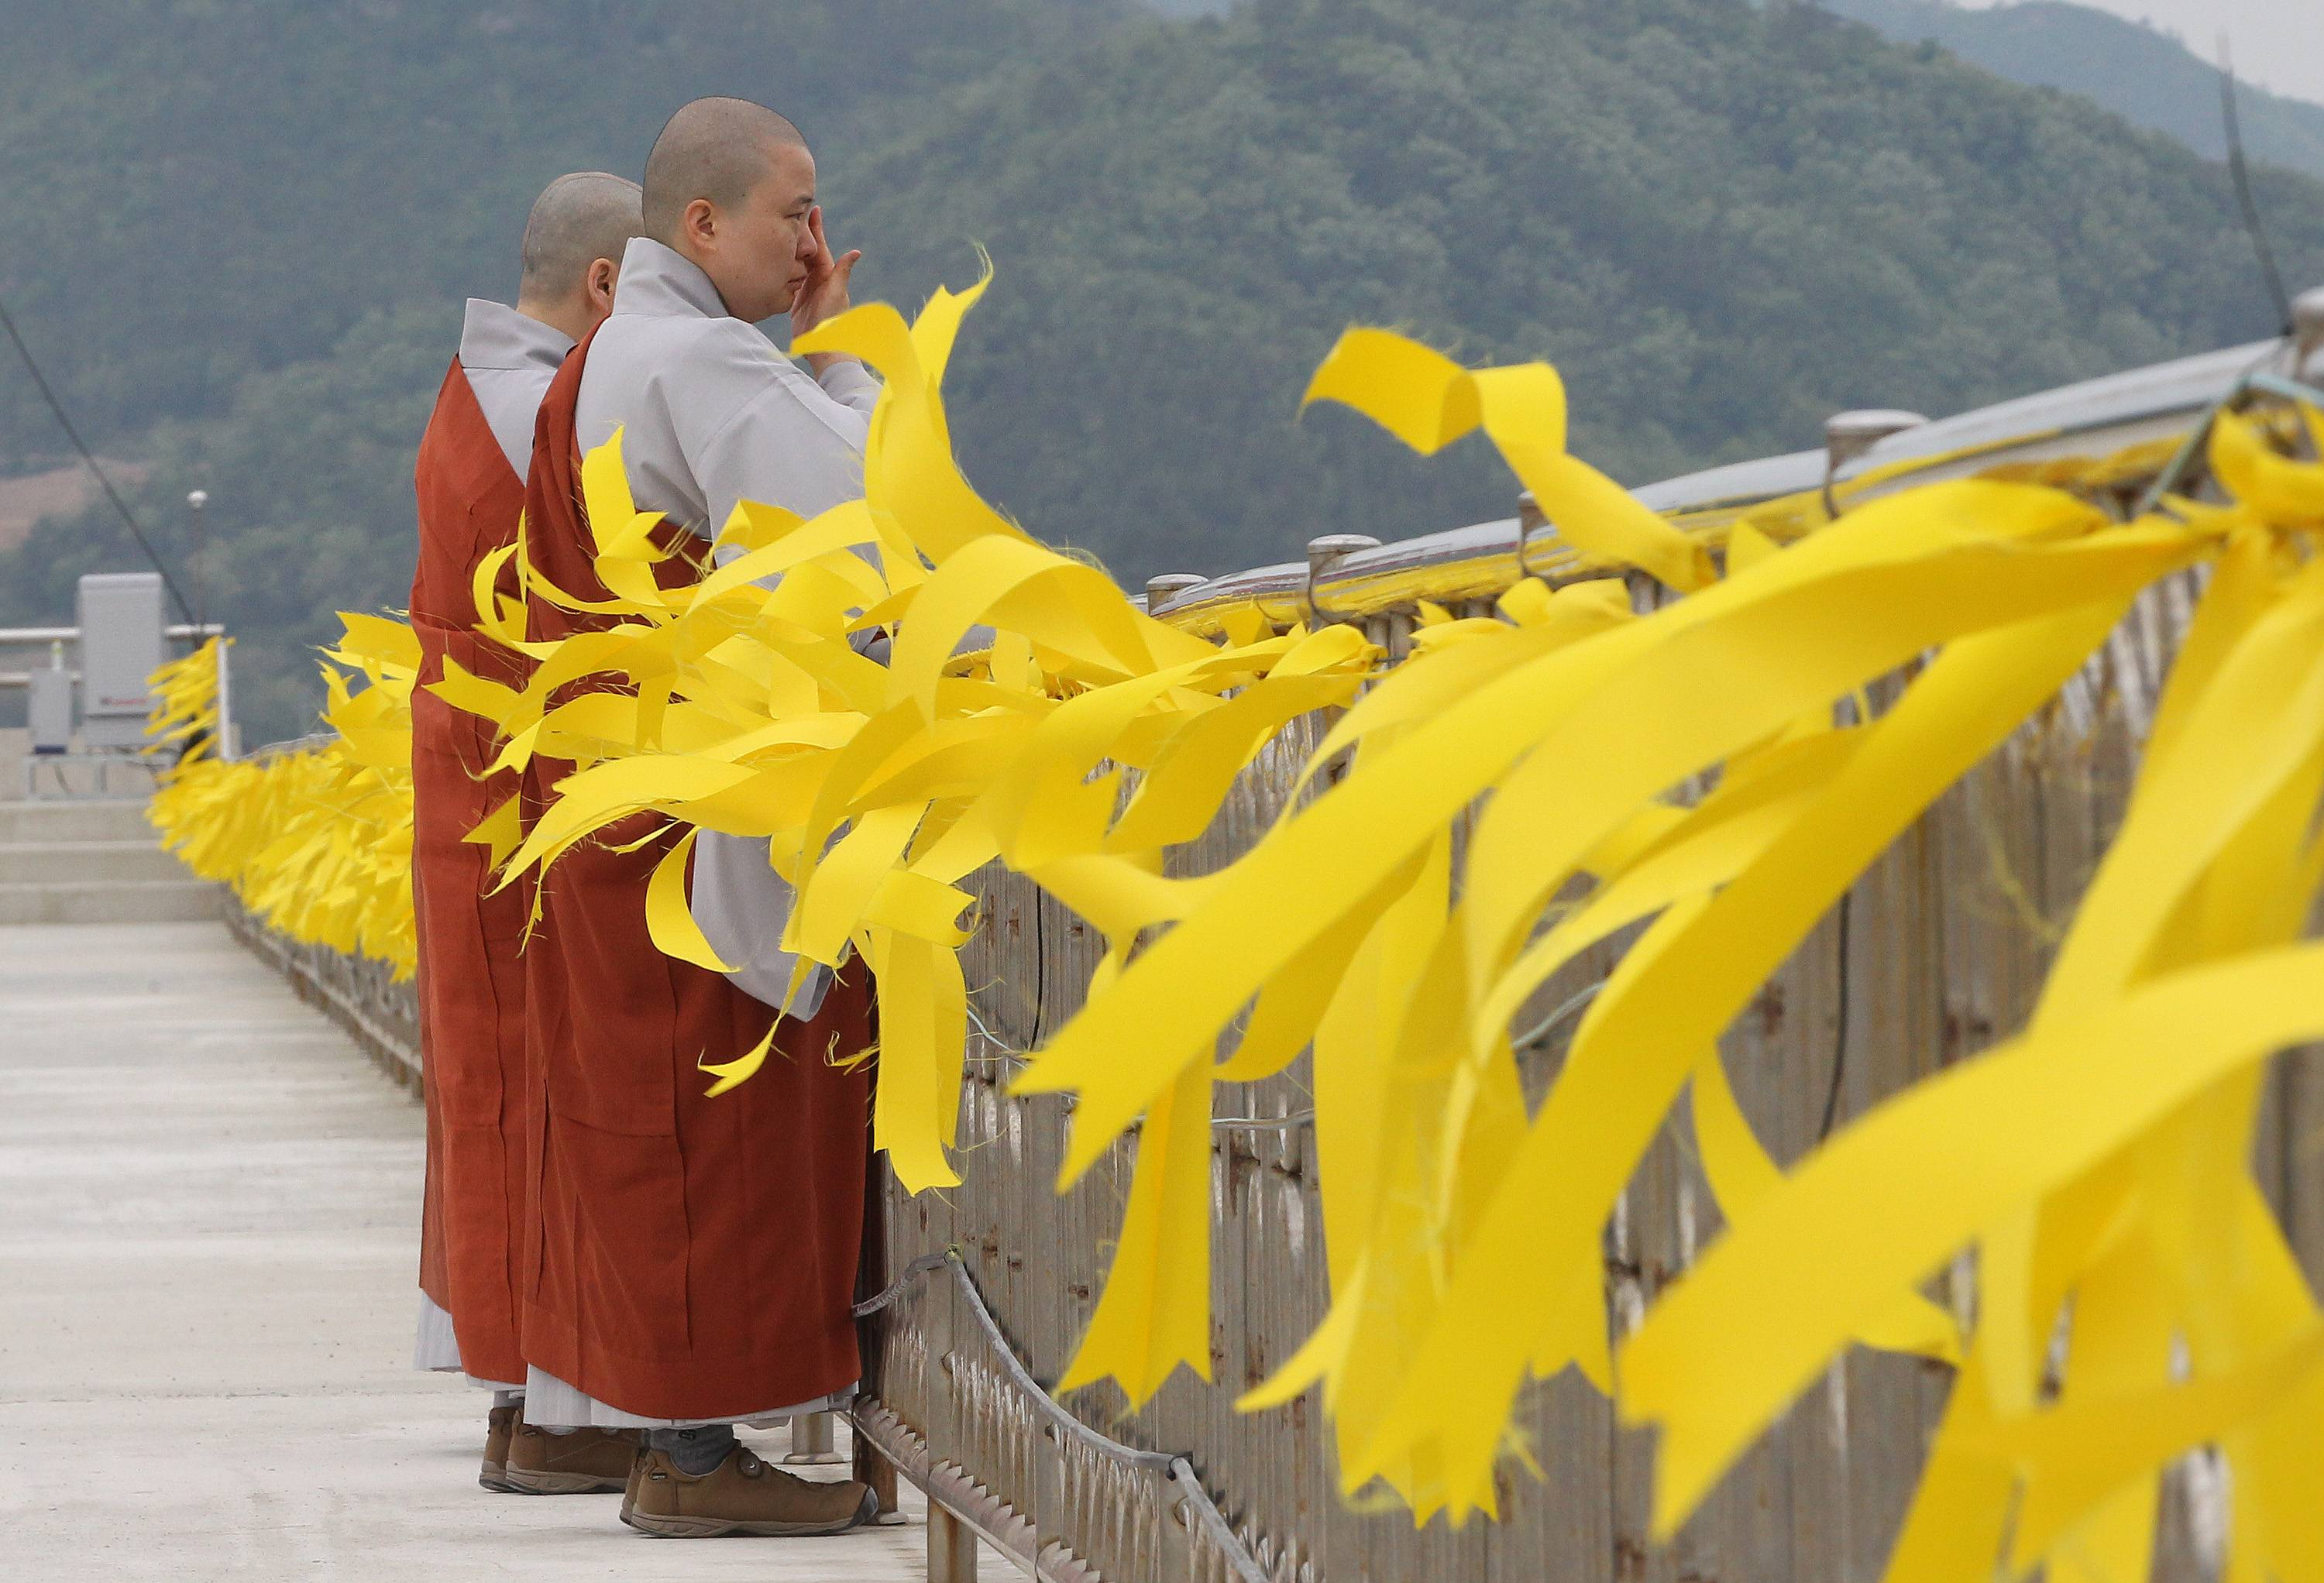 A Buddhist nun wipes her tears after attending a service as yellow ribbons are displayed as a sign of hope for the safe return of missing passengers of the sunken ferry Sewol at a port in Jindo, South Korea, Saturday, April 26, 2014. As visiting U.S. President Barack Obama offered South Koreans his condolences Friday for the ferry disaster in the water off the southern coast, the South Korean government conceded that some bodies have been misidentified and announced changes to prevent such mistakes from happening again. (AP Photo/Ahn Young-joon)